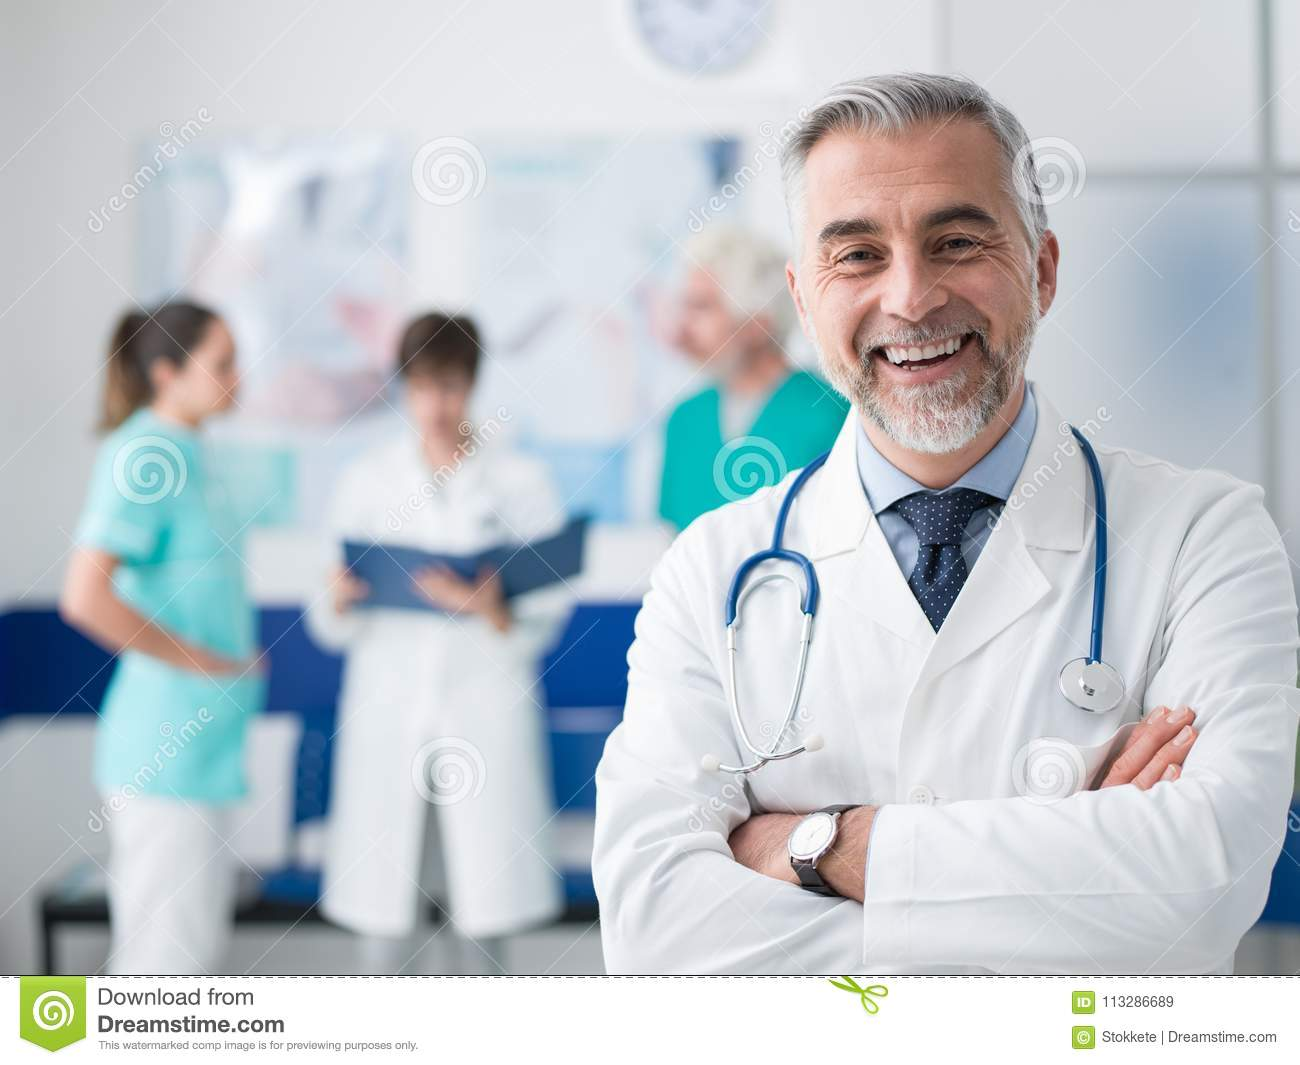 Confident doctor posing at the hospital